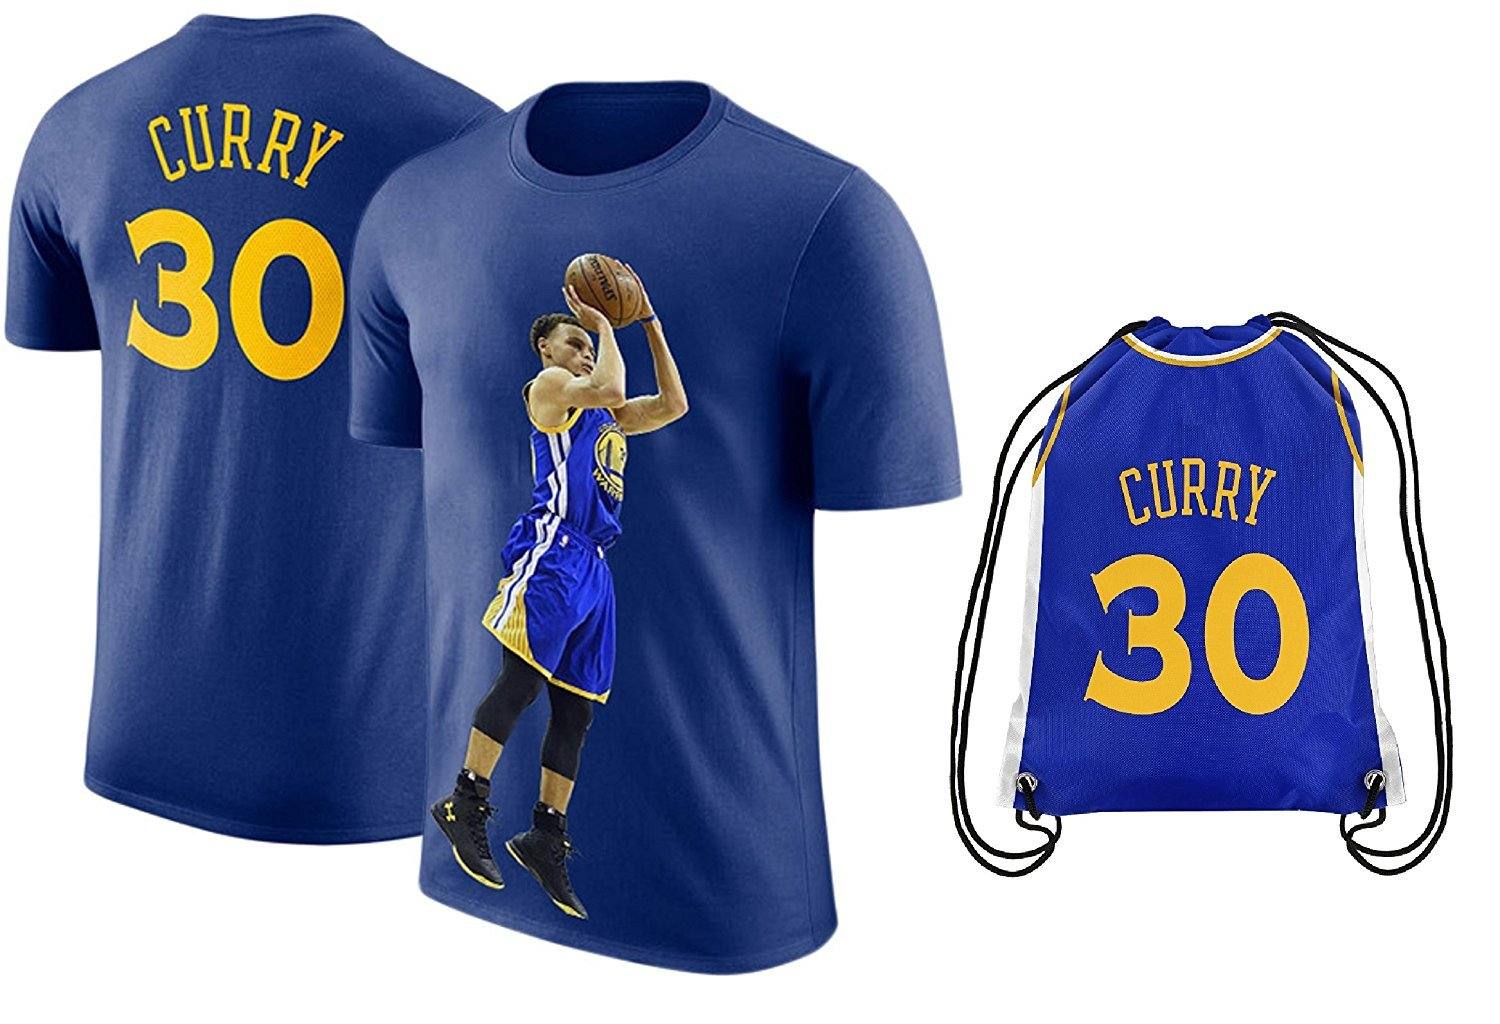 huge discount 58fad 65007 get stephen curry t shirt jersey youth 77b62 50a4e